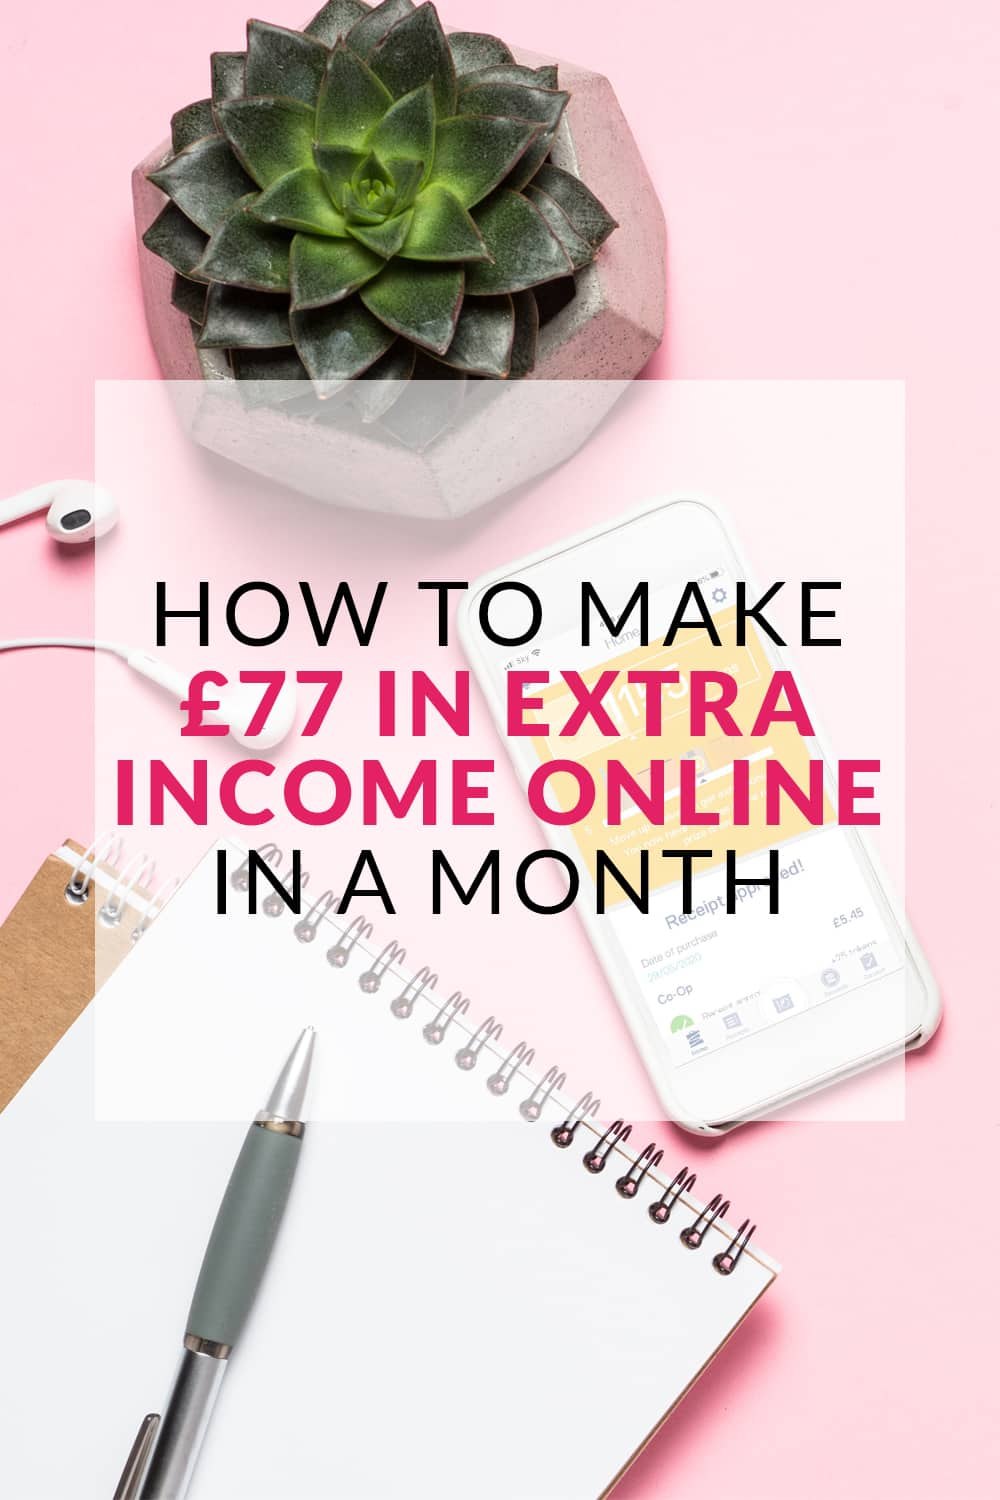 How to Make £77 in Extra Income Online In a Month